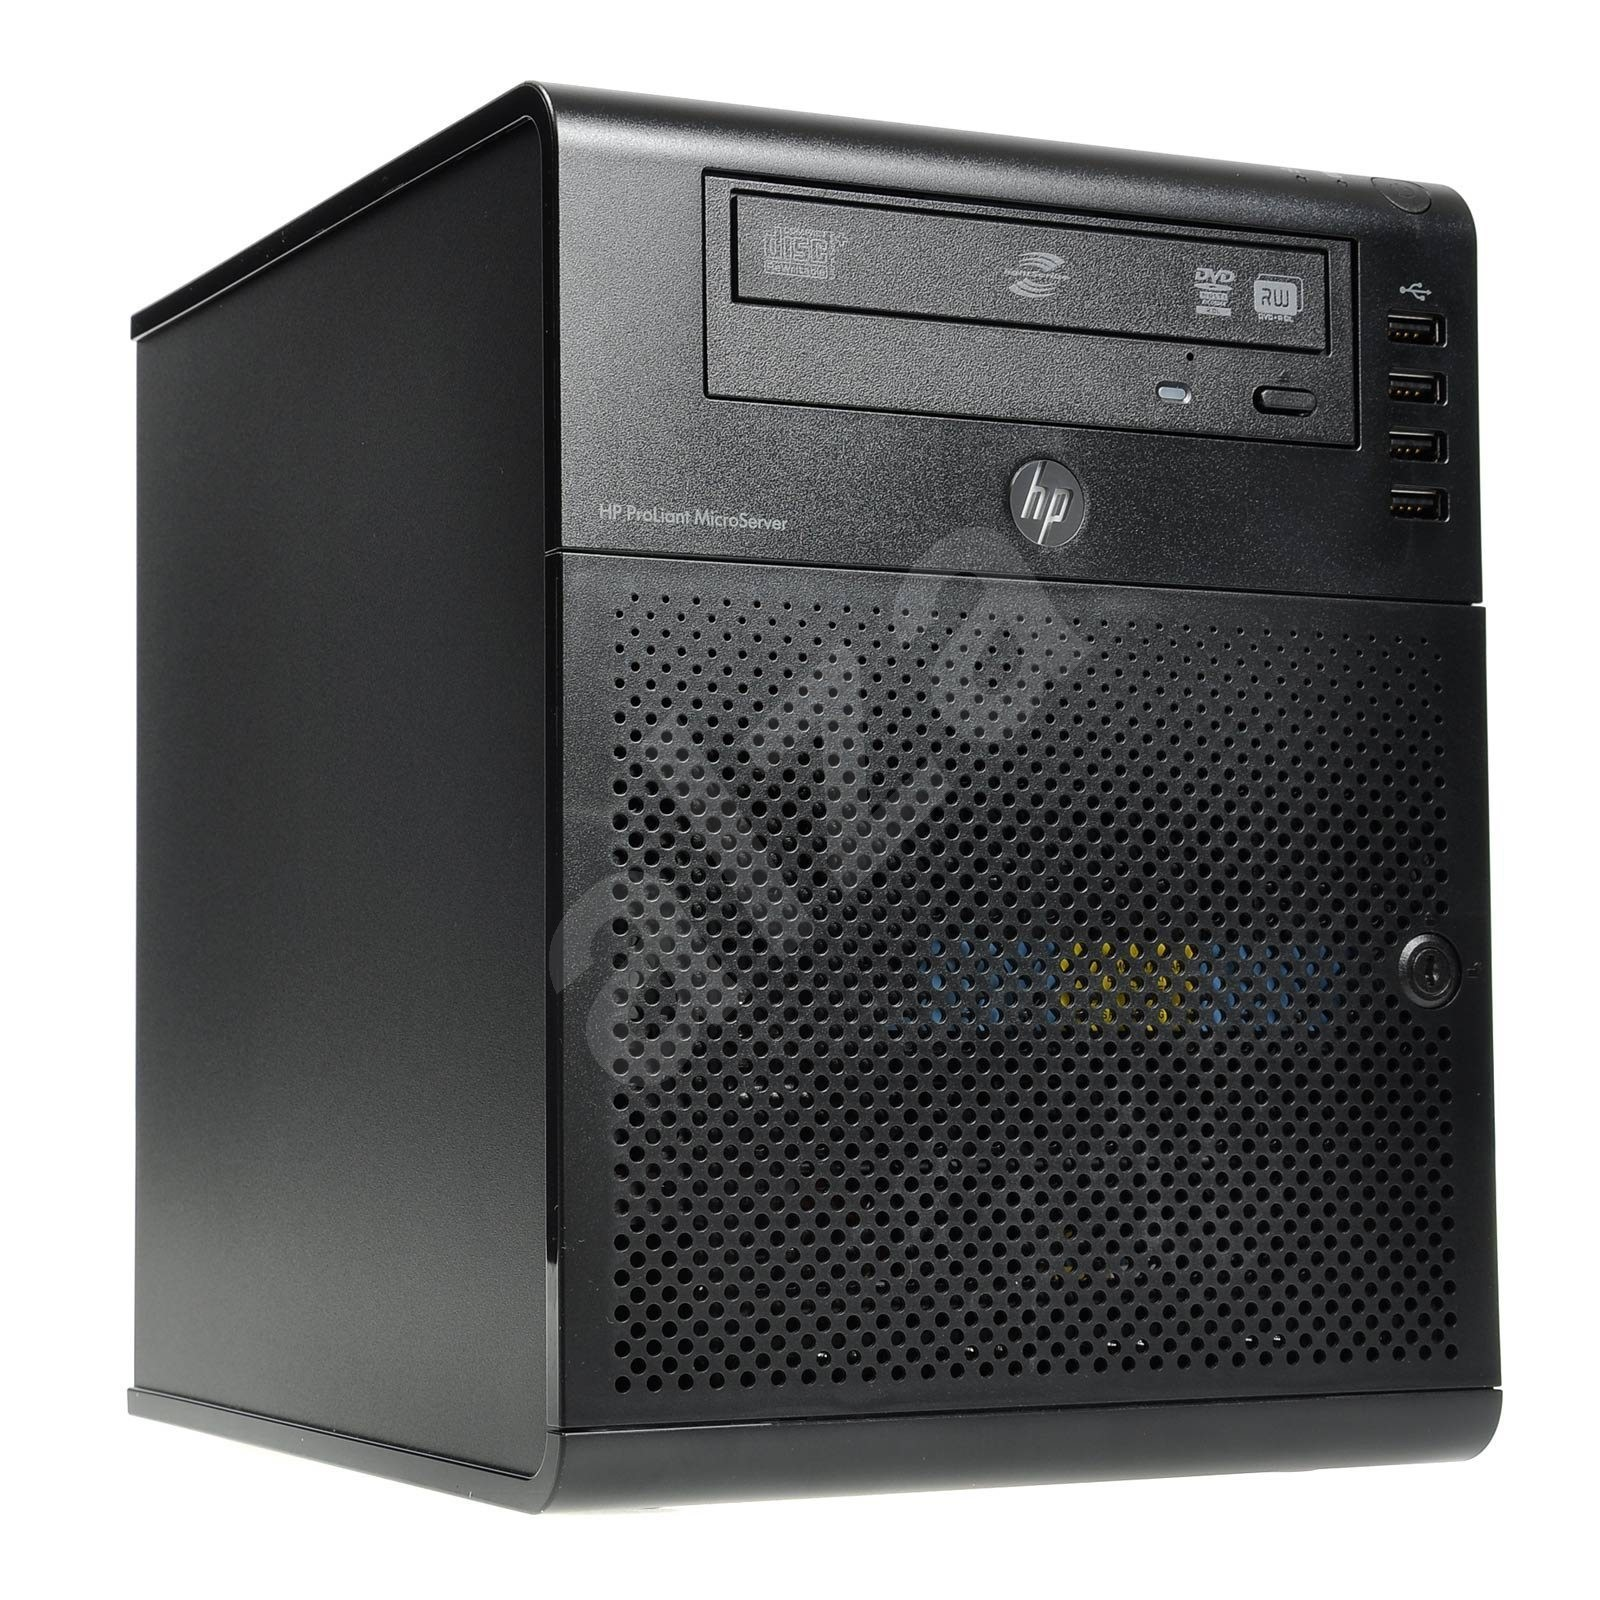 hp proliant microserver server. Black Bedroom Furniture Sets. Home Design Ideas